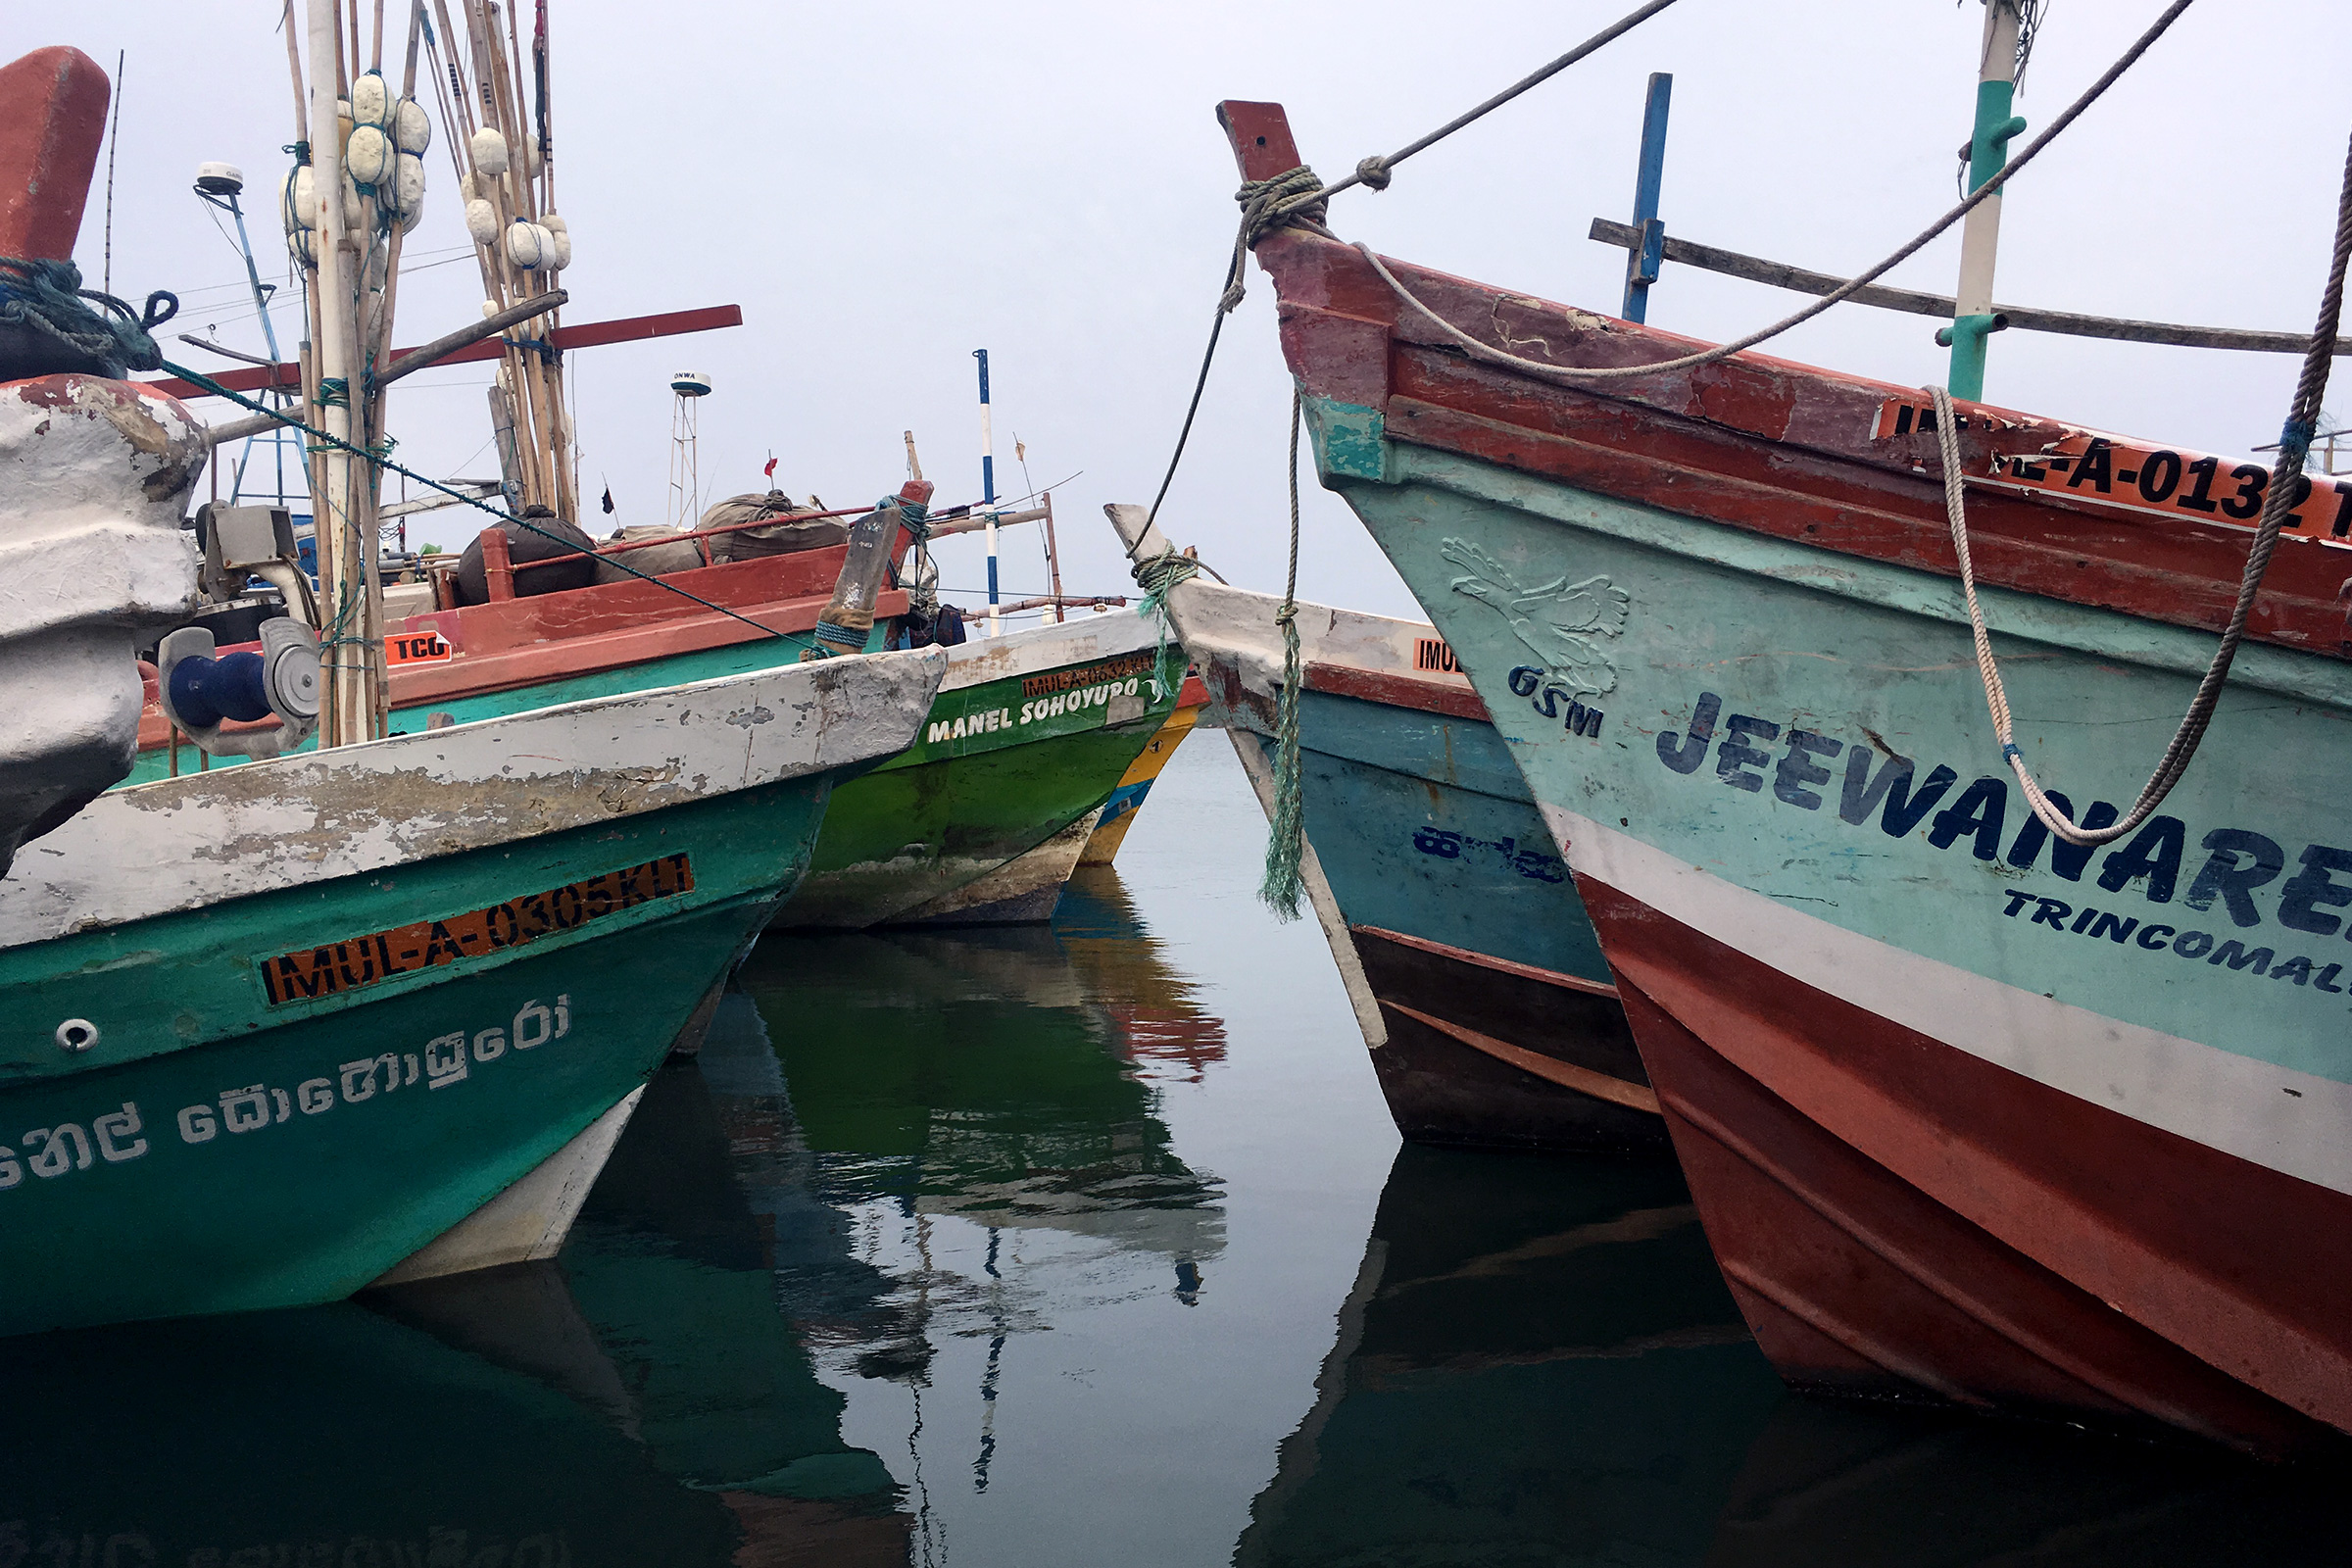 Boats in the harbor at Troncomalee.